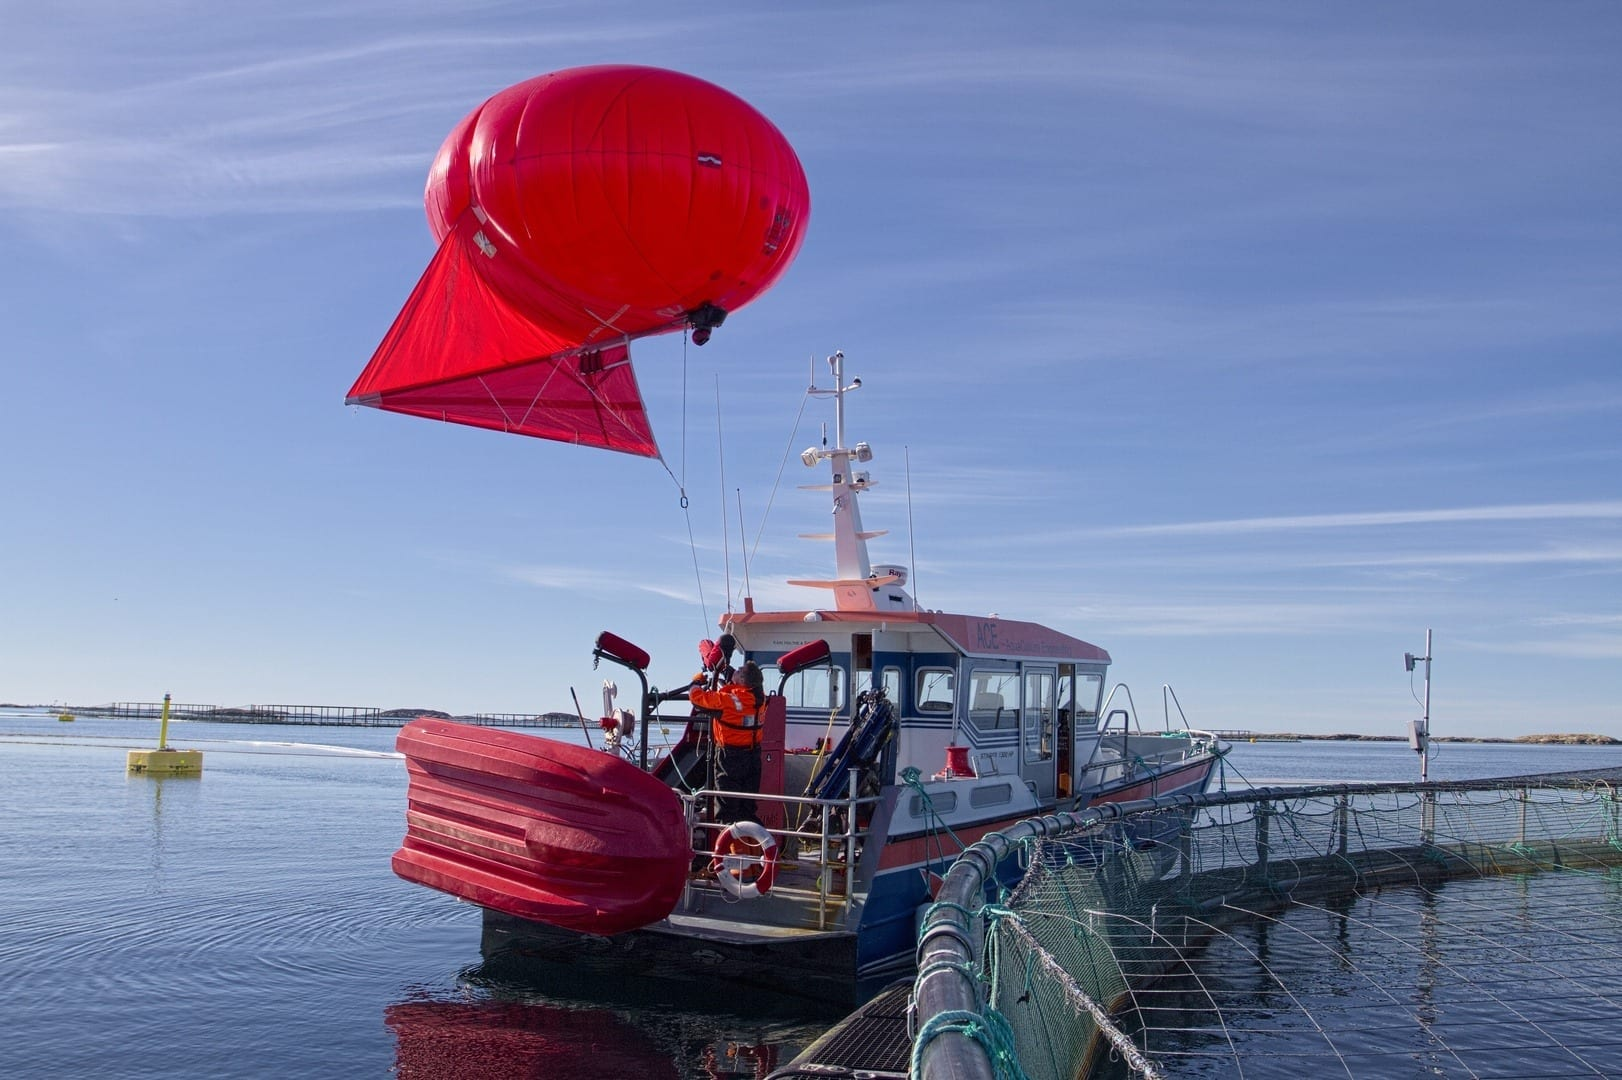 """In this experiment, researchers used the""""OceanEye"""" system supplied by Maritime Robotics. The balloon, which is equipped with a remote-controlled camera, can remain airborne and will supply clear aerial images, even in""""fresh breeze"""" conditions. The experiment was carried out at the Rataran facility, operated by SALMAR and ACE."""